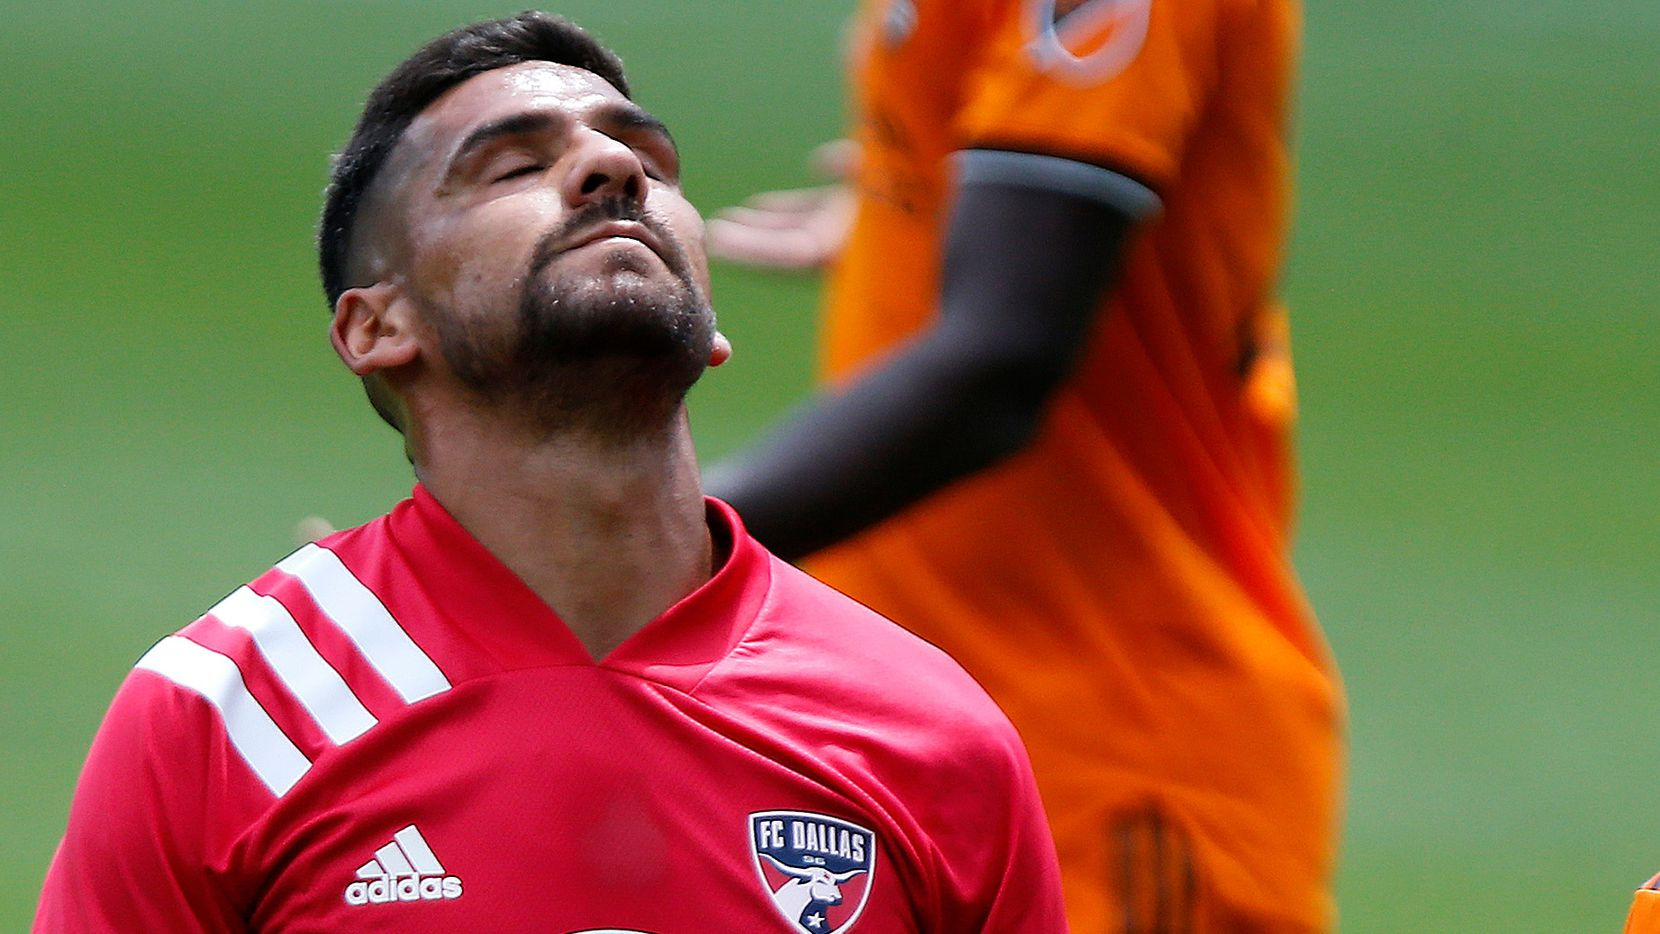 FC Dallas forward Franco Jara (29) reacts to a missed shot on goal during the first half as FC Dallas hosted the Houston Dynamo at Toyota Stadium in Frisco on May 8, 2021.